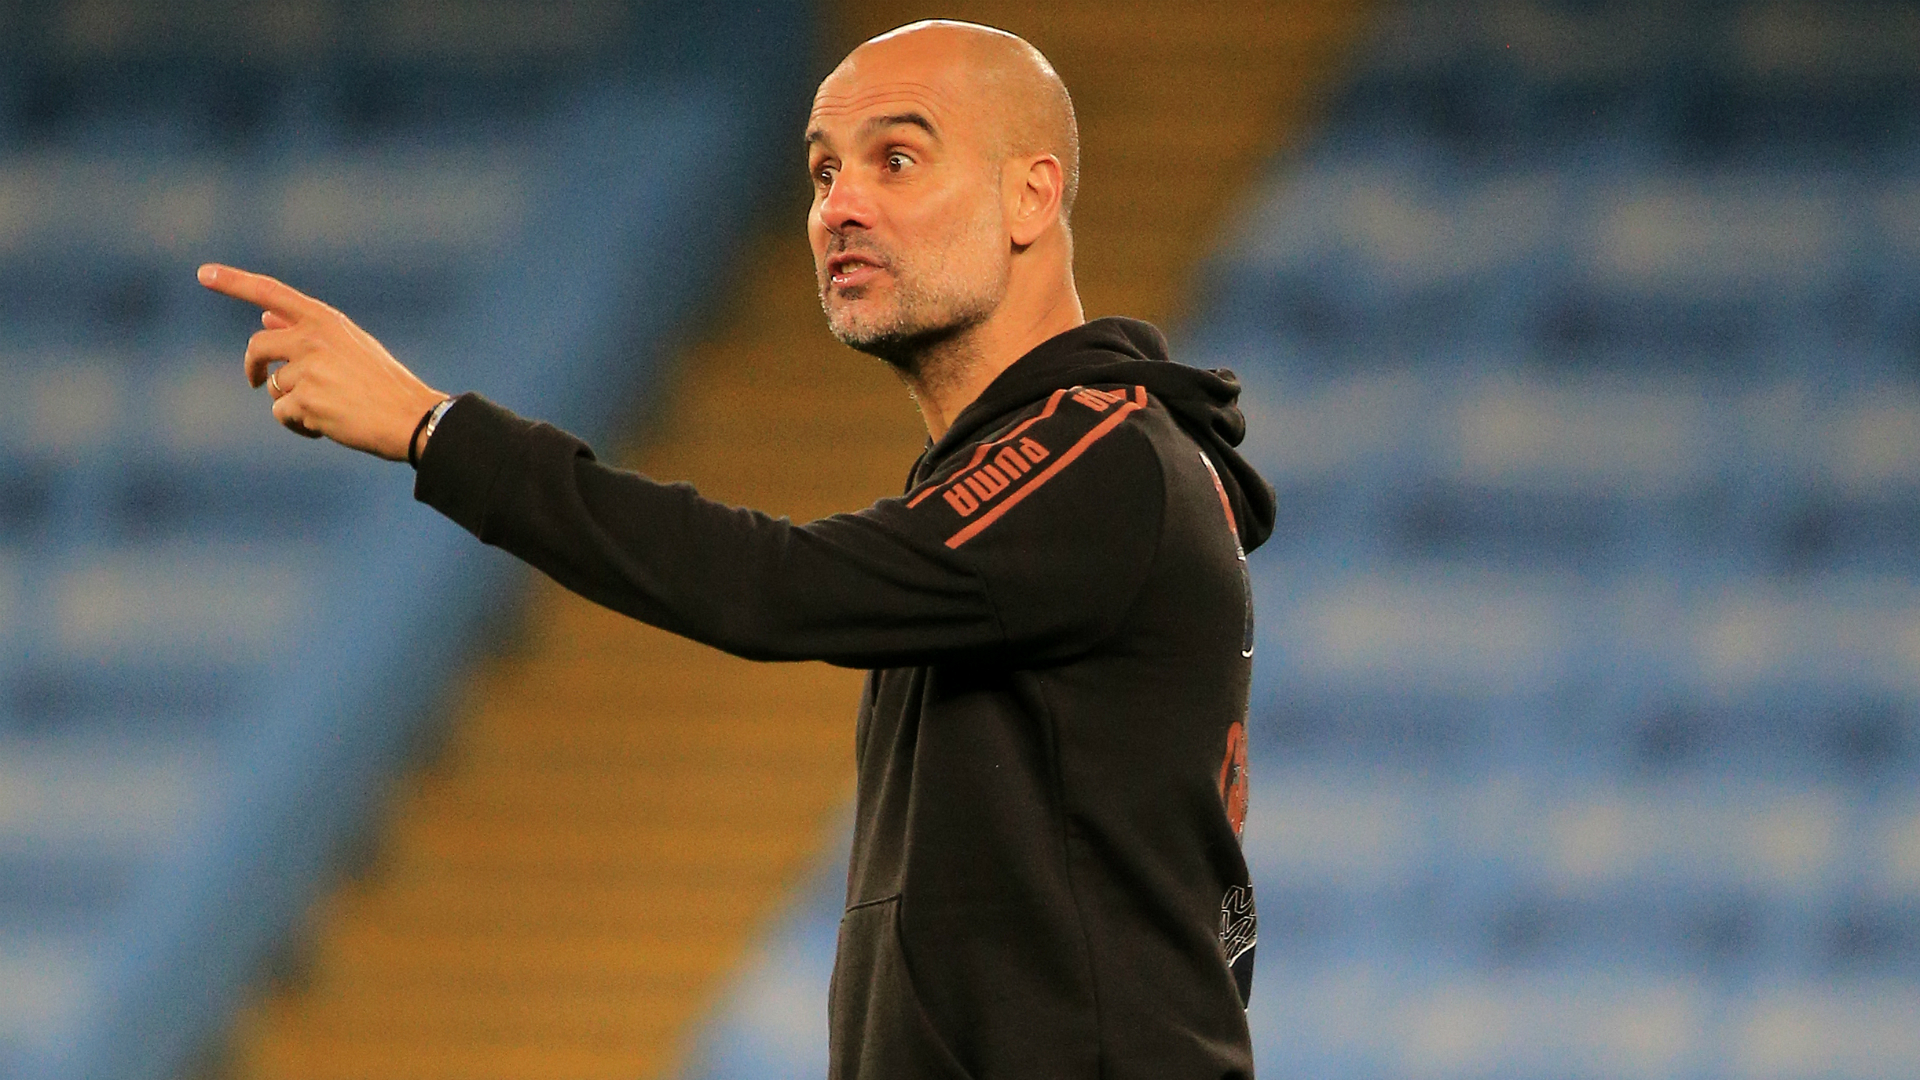 Man City boss Guardiola hits out at schedule: Nobody cares about the players